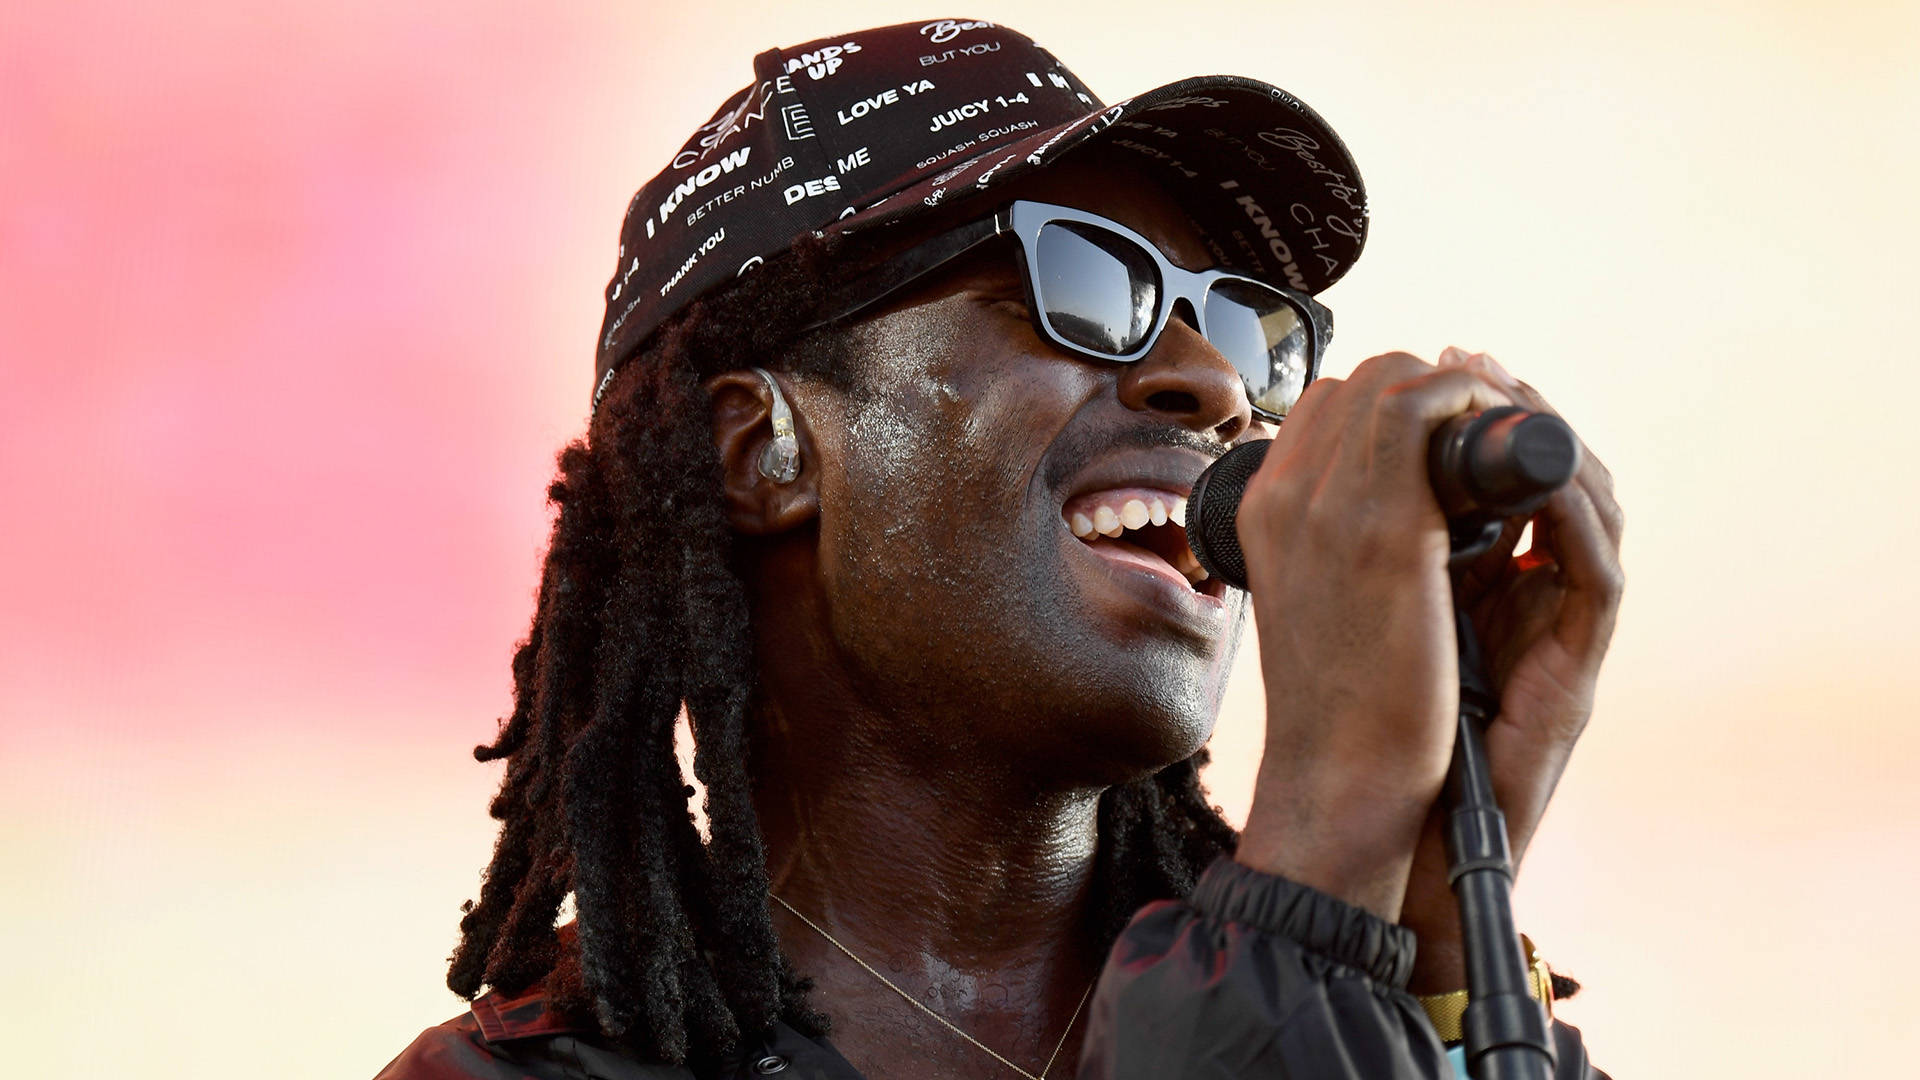 Dev Hynes aka Blood Orange performs at FYF Fest 2016 in Los Angeles.  Kevin Winter/Getty Images for FYF